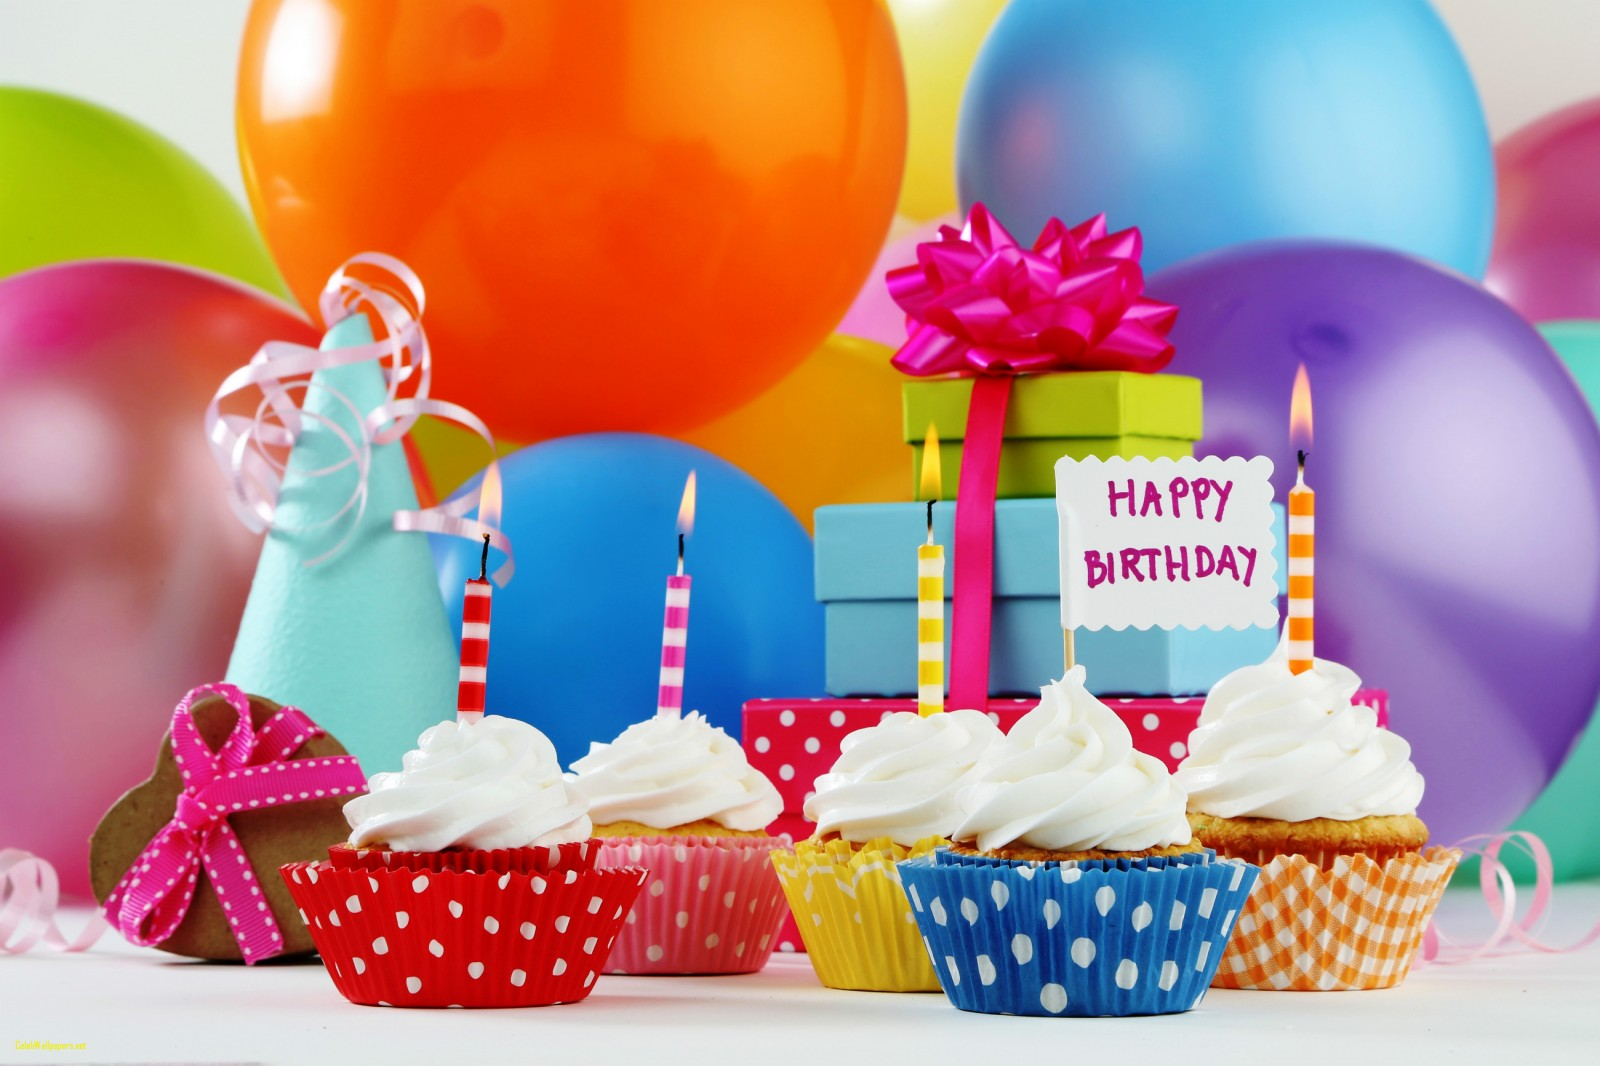 birthday images download hd ; happy-bday-images-happy-birthday-balloons-hd-free-download-of-happy-bday-images